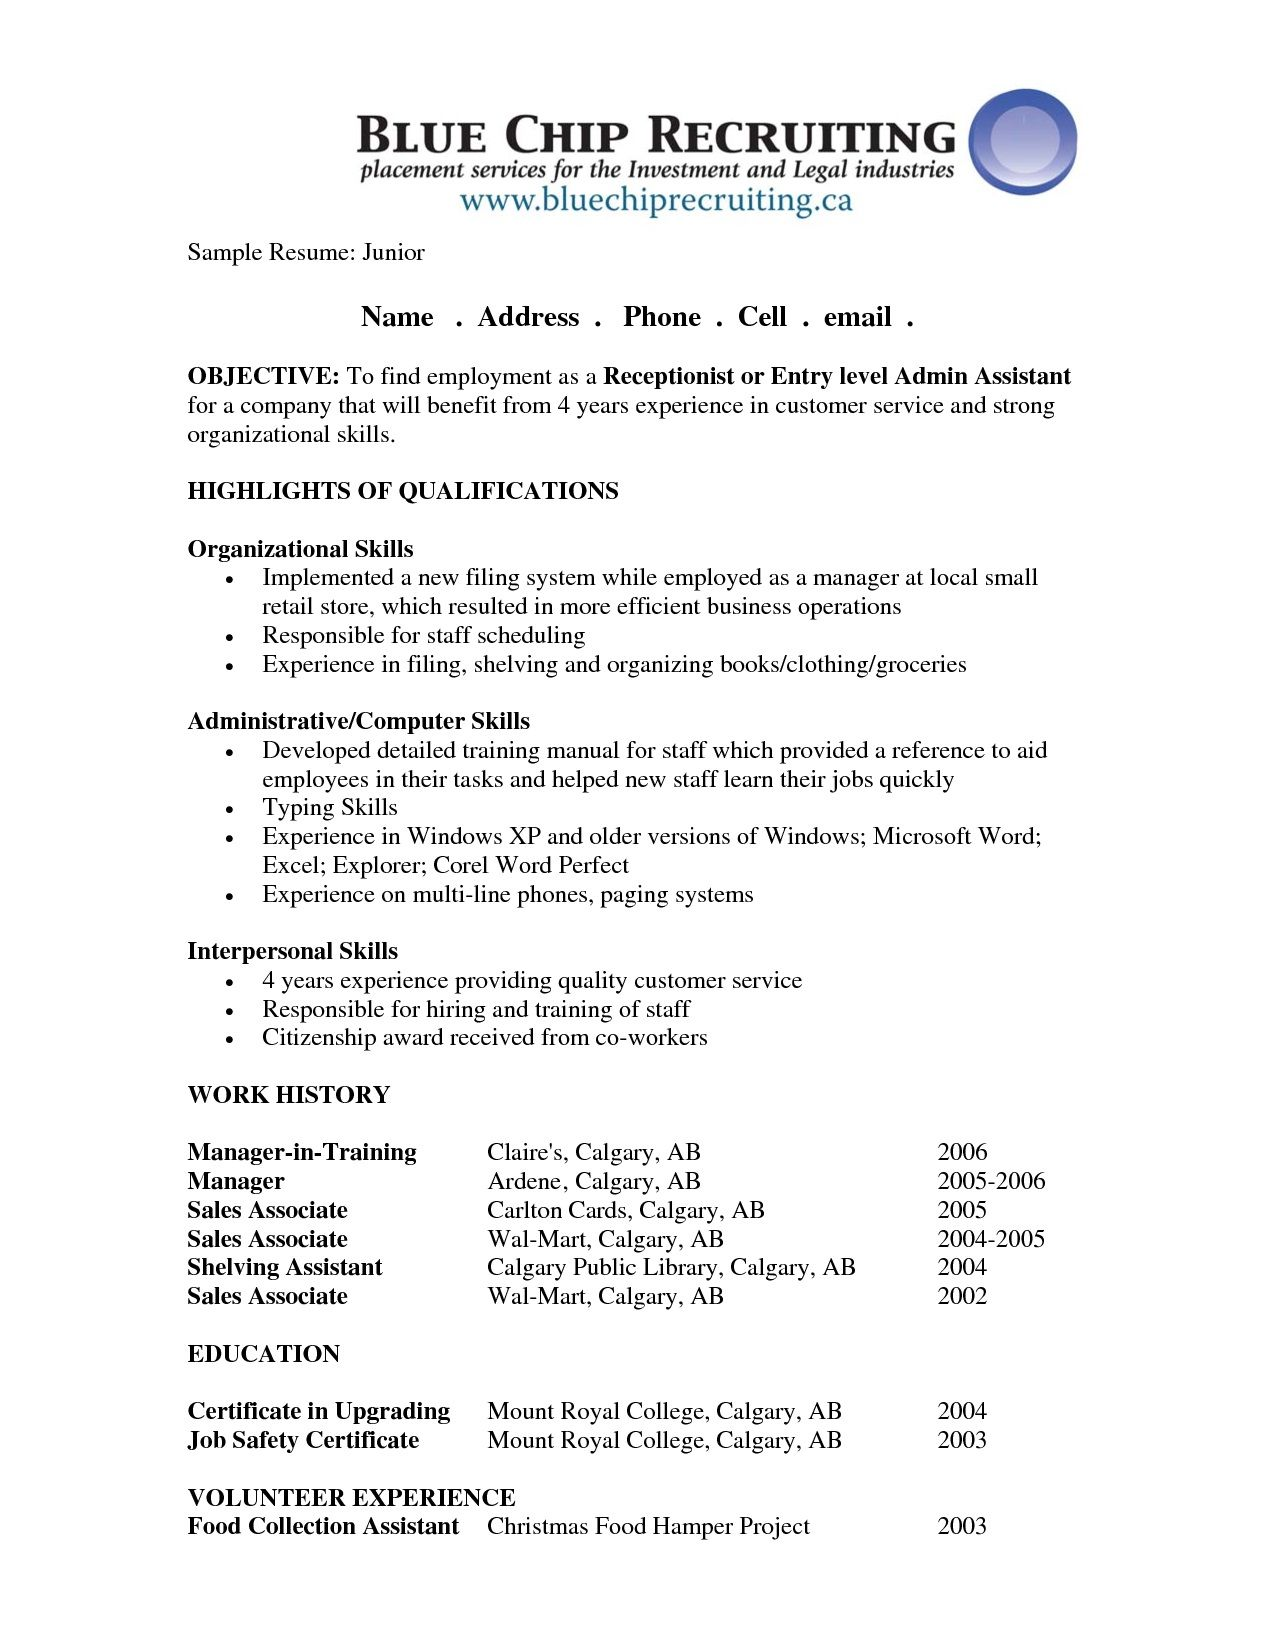 Sample Resume Skills And Qualifications Skills Job Resume History Resume  Templates Samples Simple Resume .